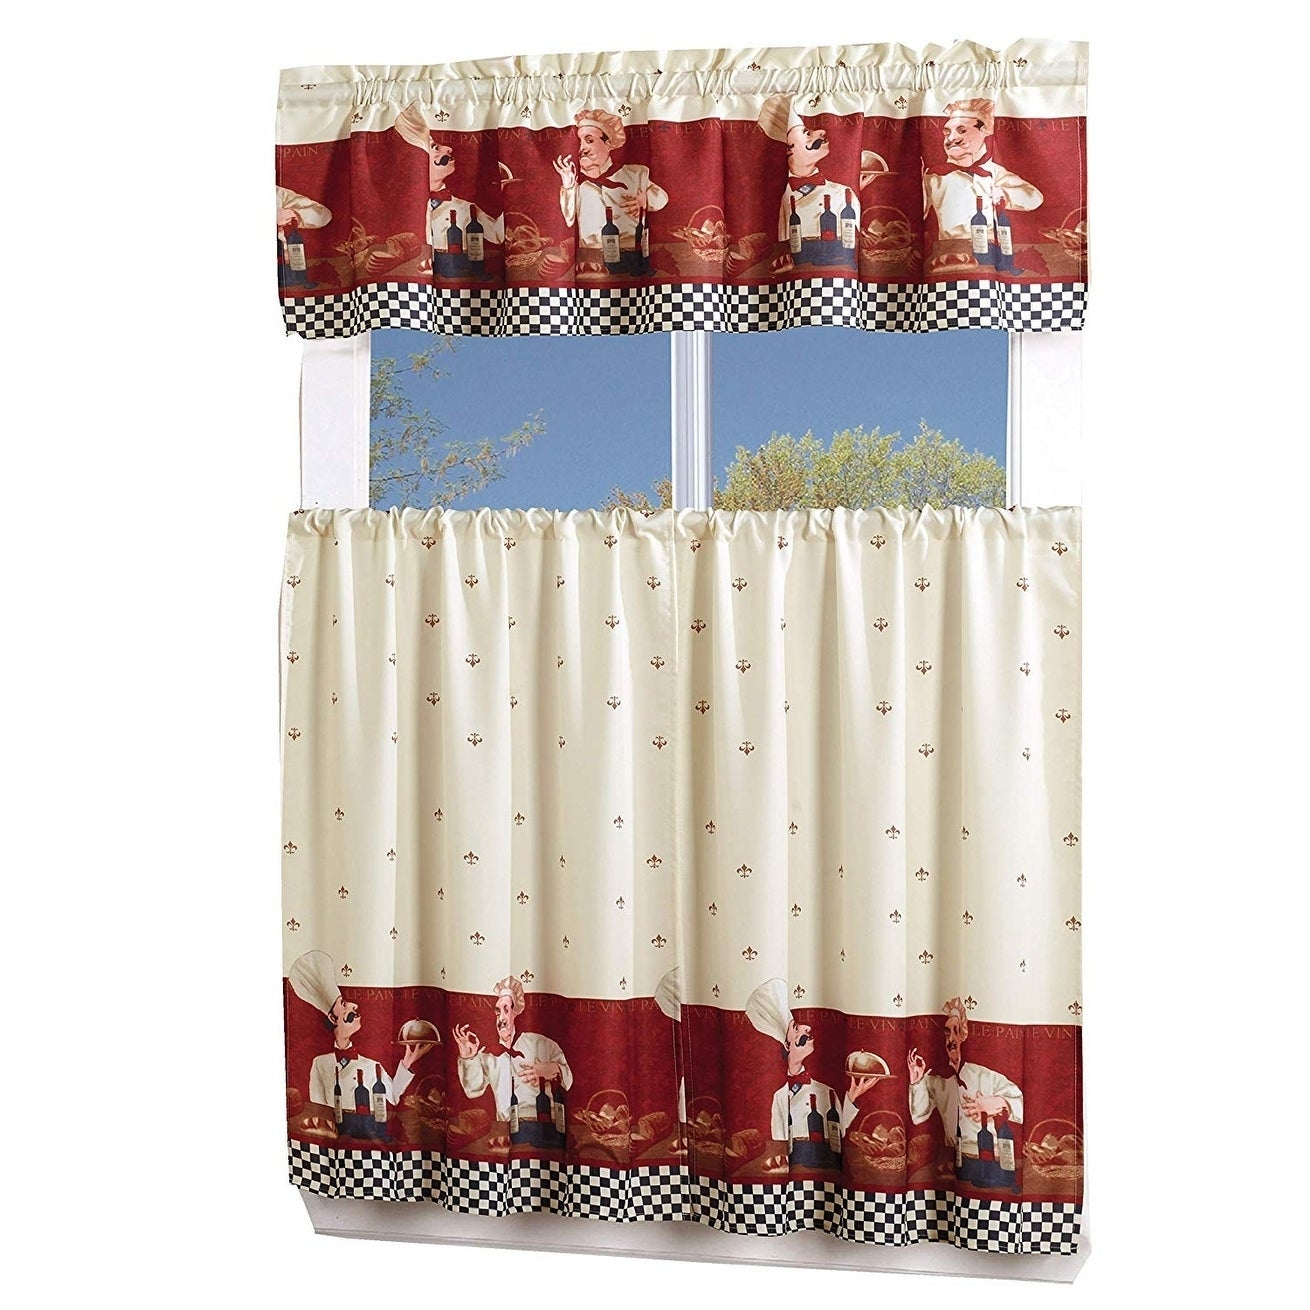 Porch & Den Capri 3 Piece Kitchen Window Curtain Set Pertaining To Cotton Lace 5 Piece Window Tier And Swag Sets (View 15 of 20)